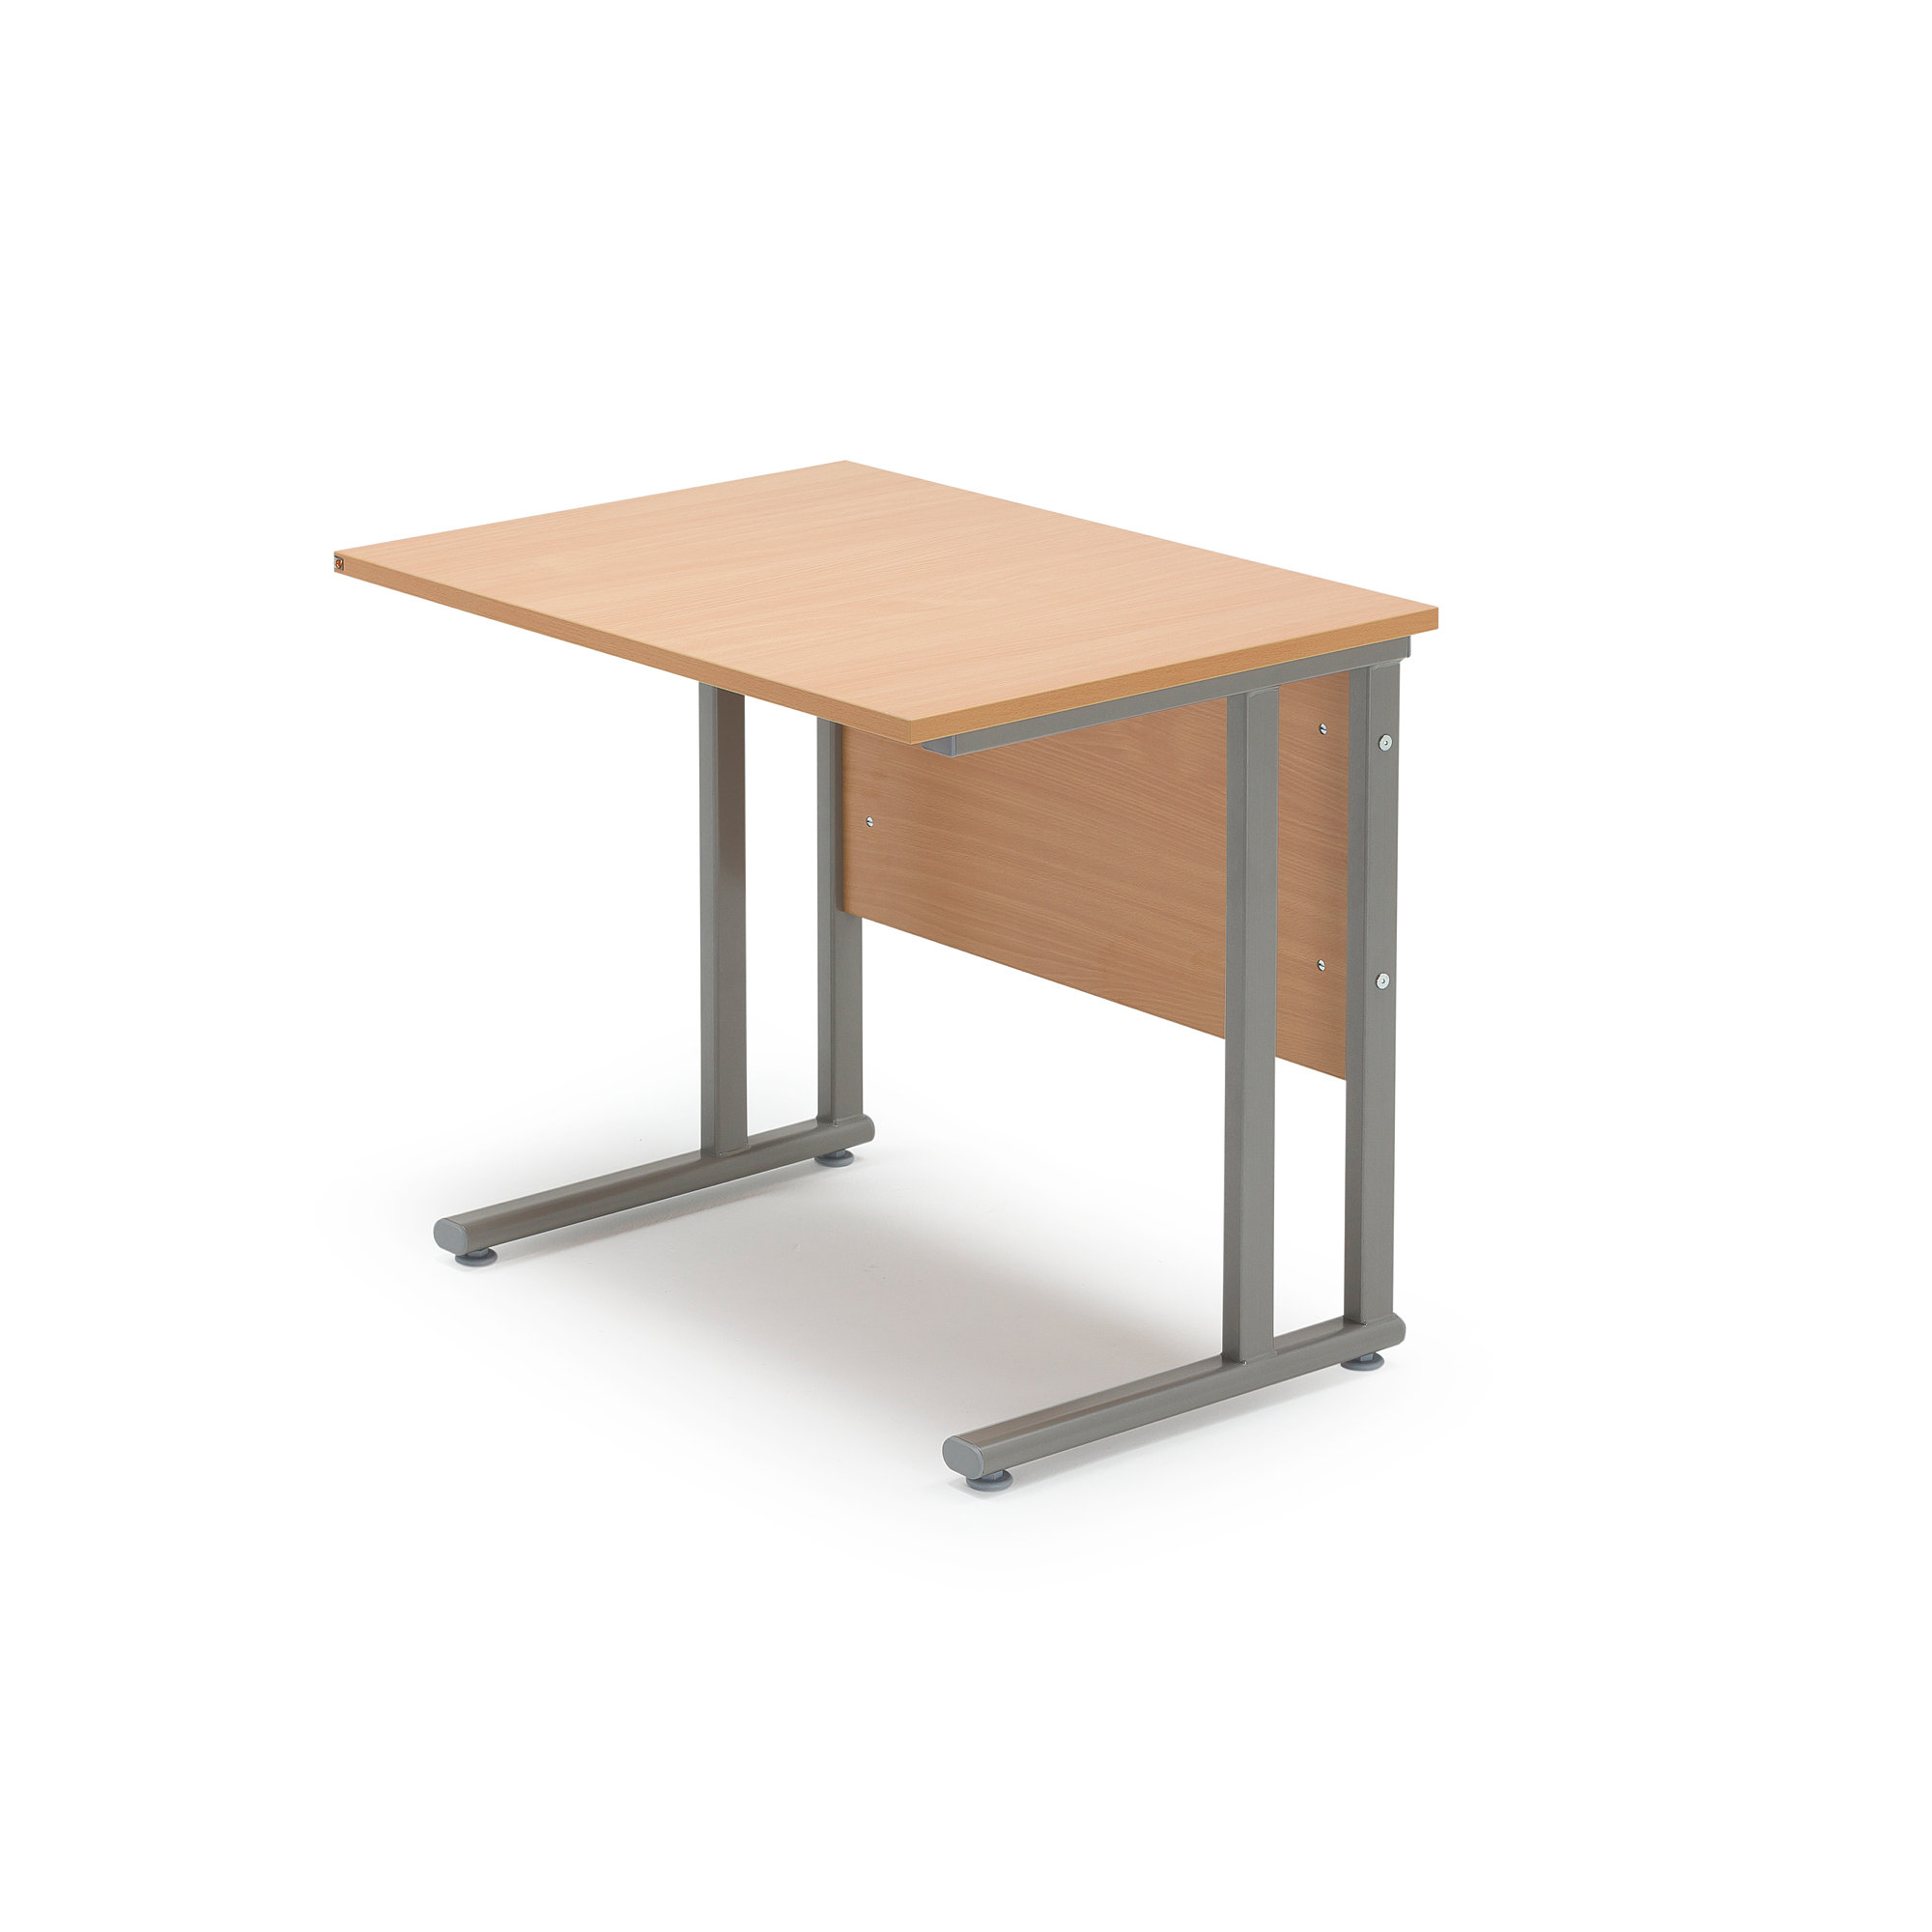 Return desk FLEXUS 800x600 mm beech laminate  AJ